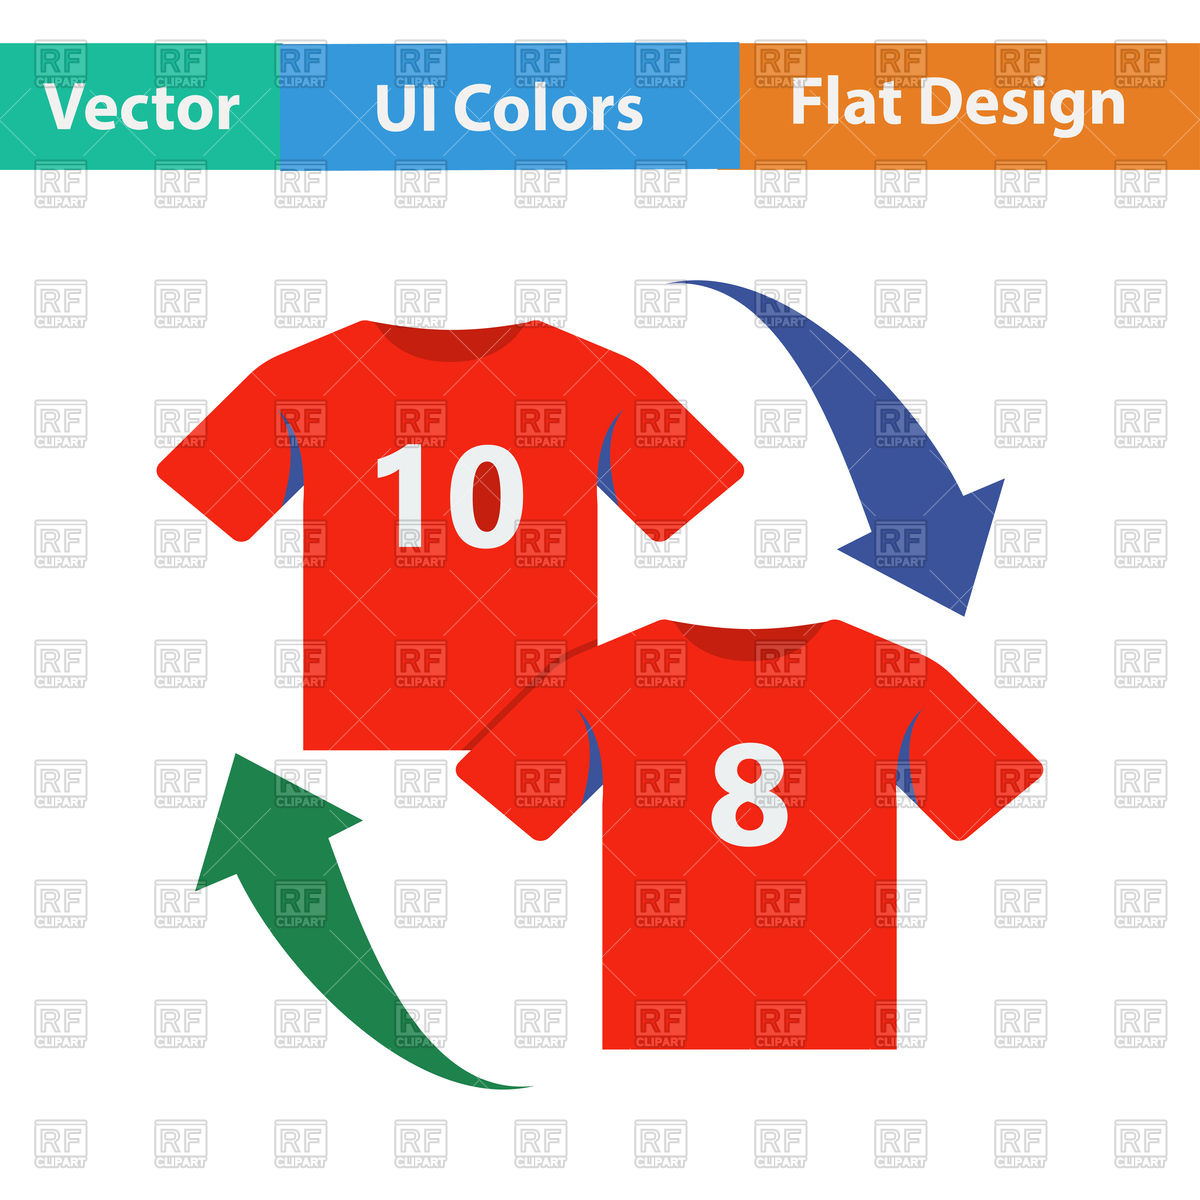 Flat design icon of soccer replace Vector Image #113285.